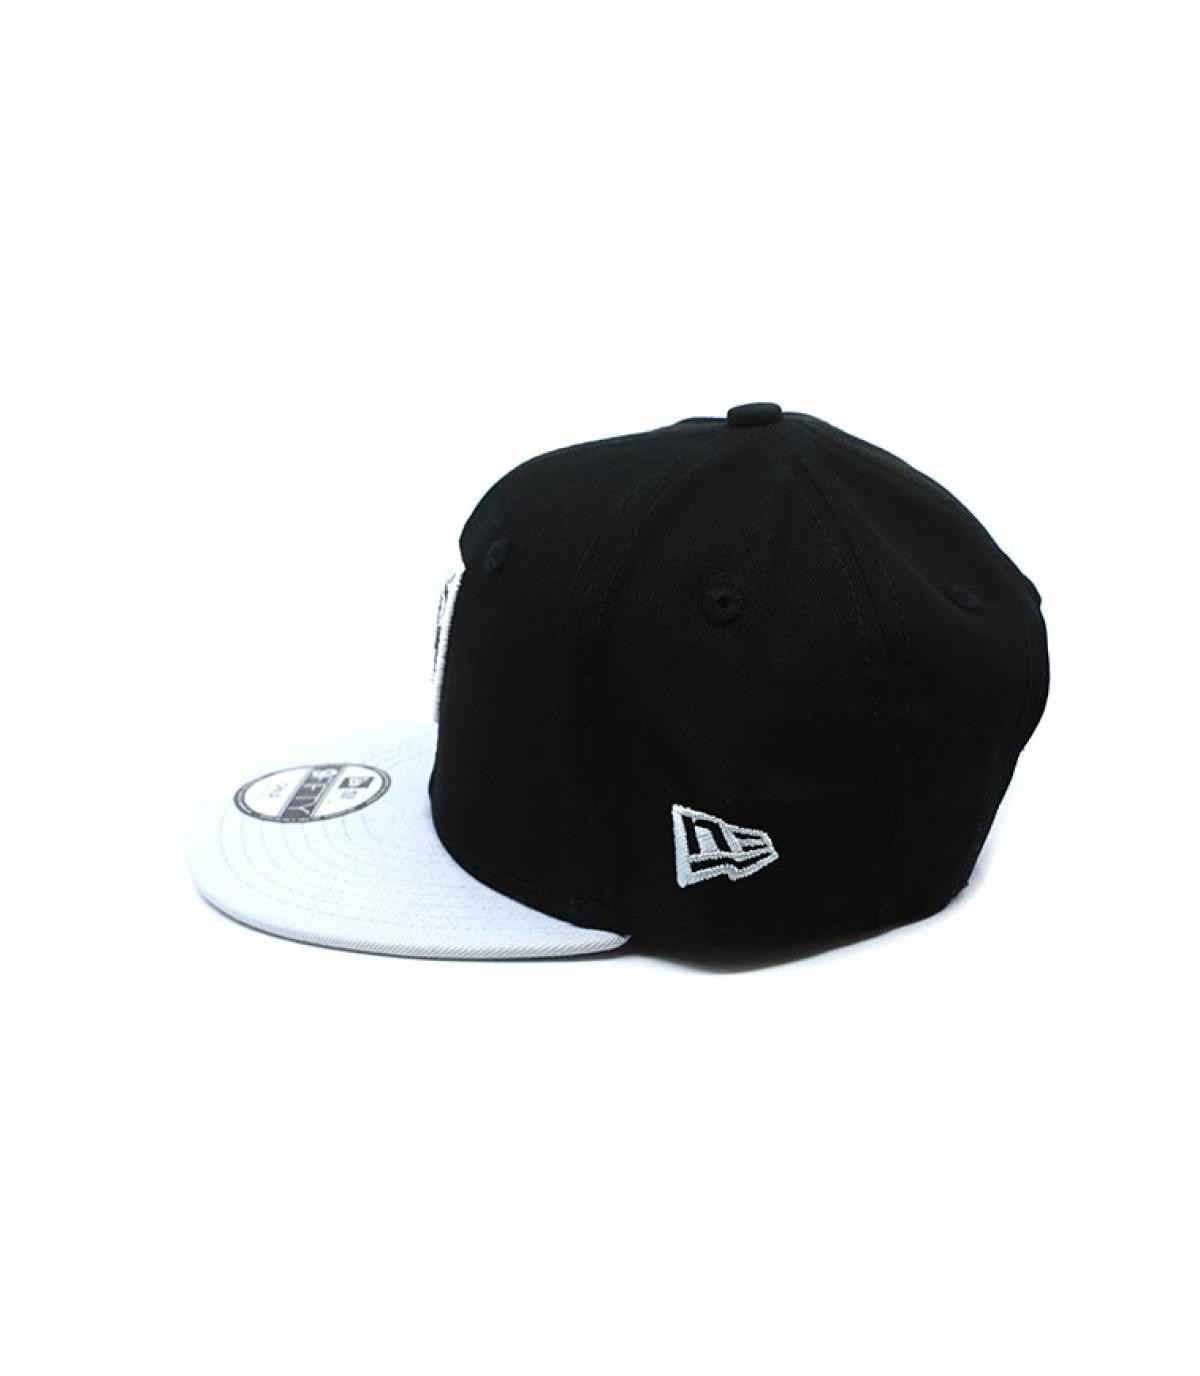 Détails Snapback Contrast Team Raiders 9Fifty - image 4